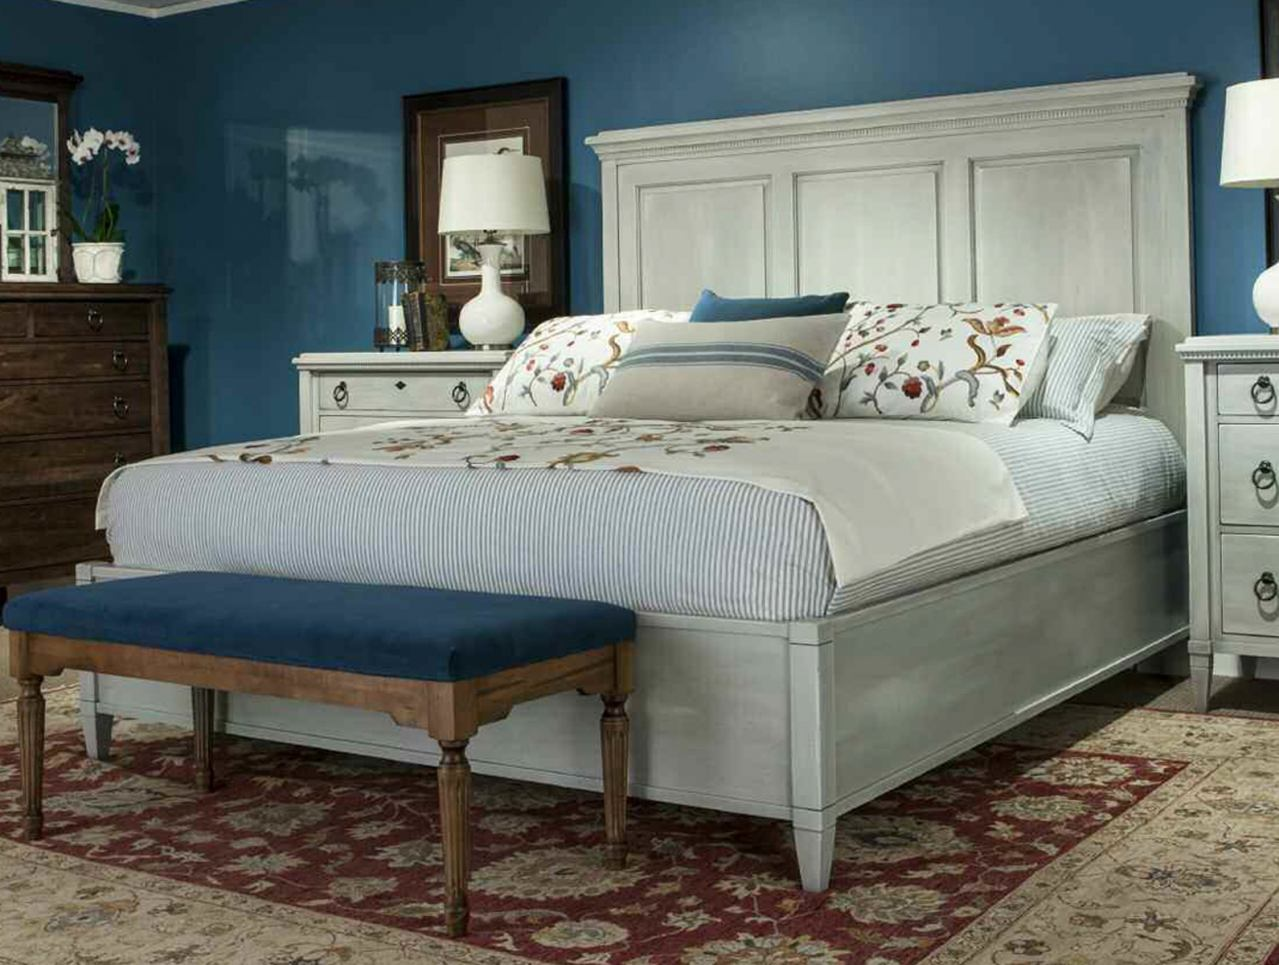 Durham Furniture Springville King Panel Bed in Bark 145-144-BARK